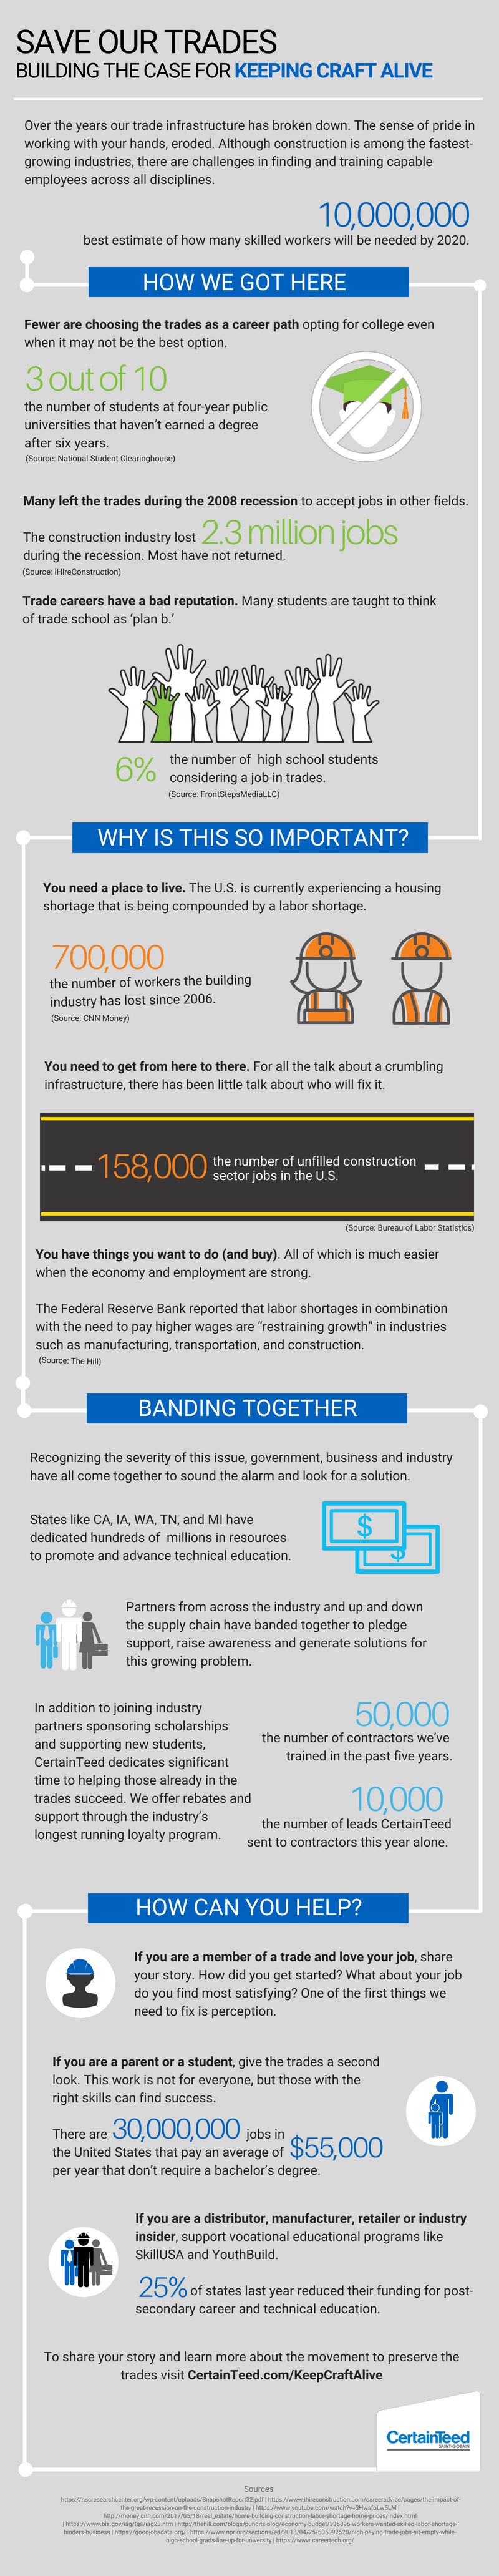 Keep Craft Alive infographic to help explain the construction, building, manufacturing labor shortages.